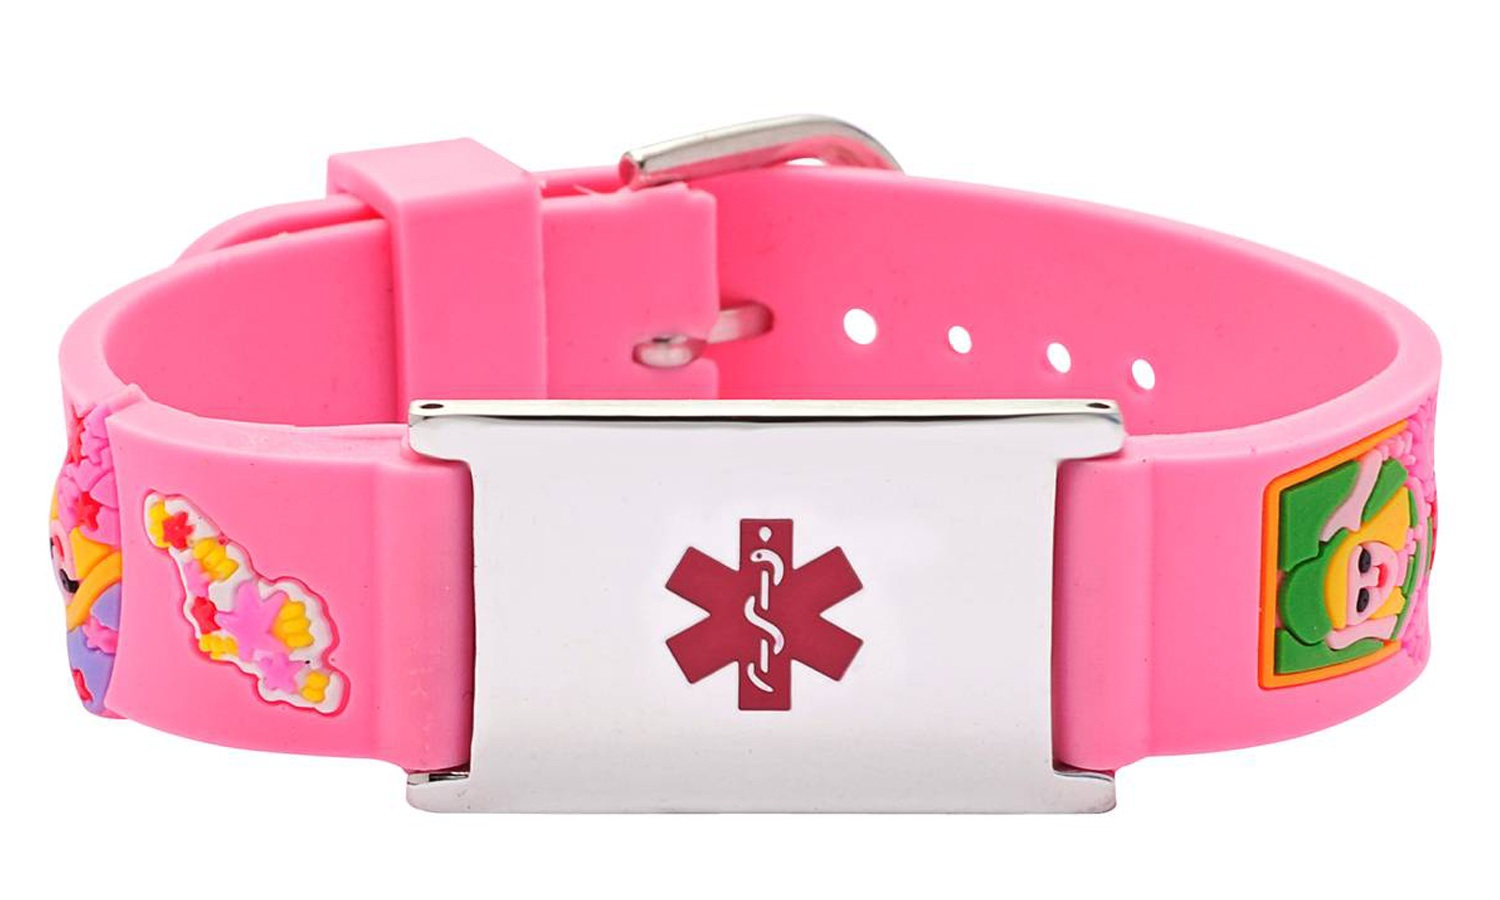 kid allergy bracelet keeping your safe when they food allergies 24 9842